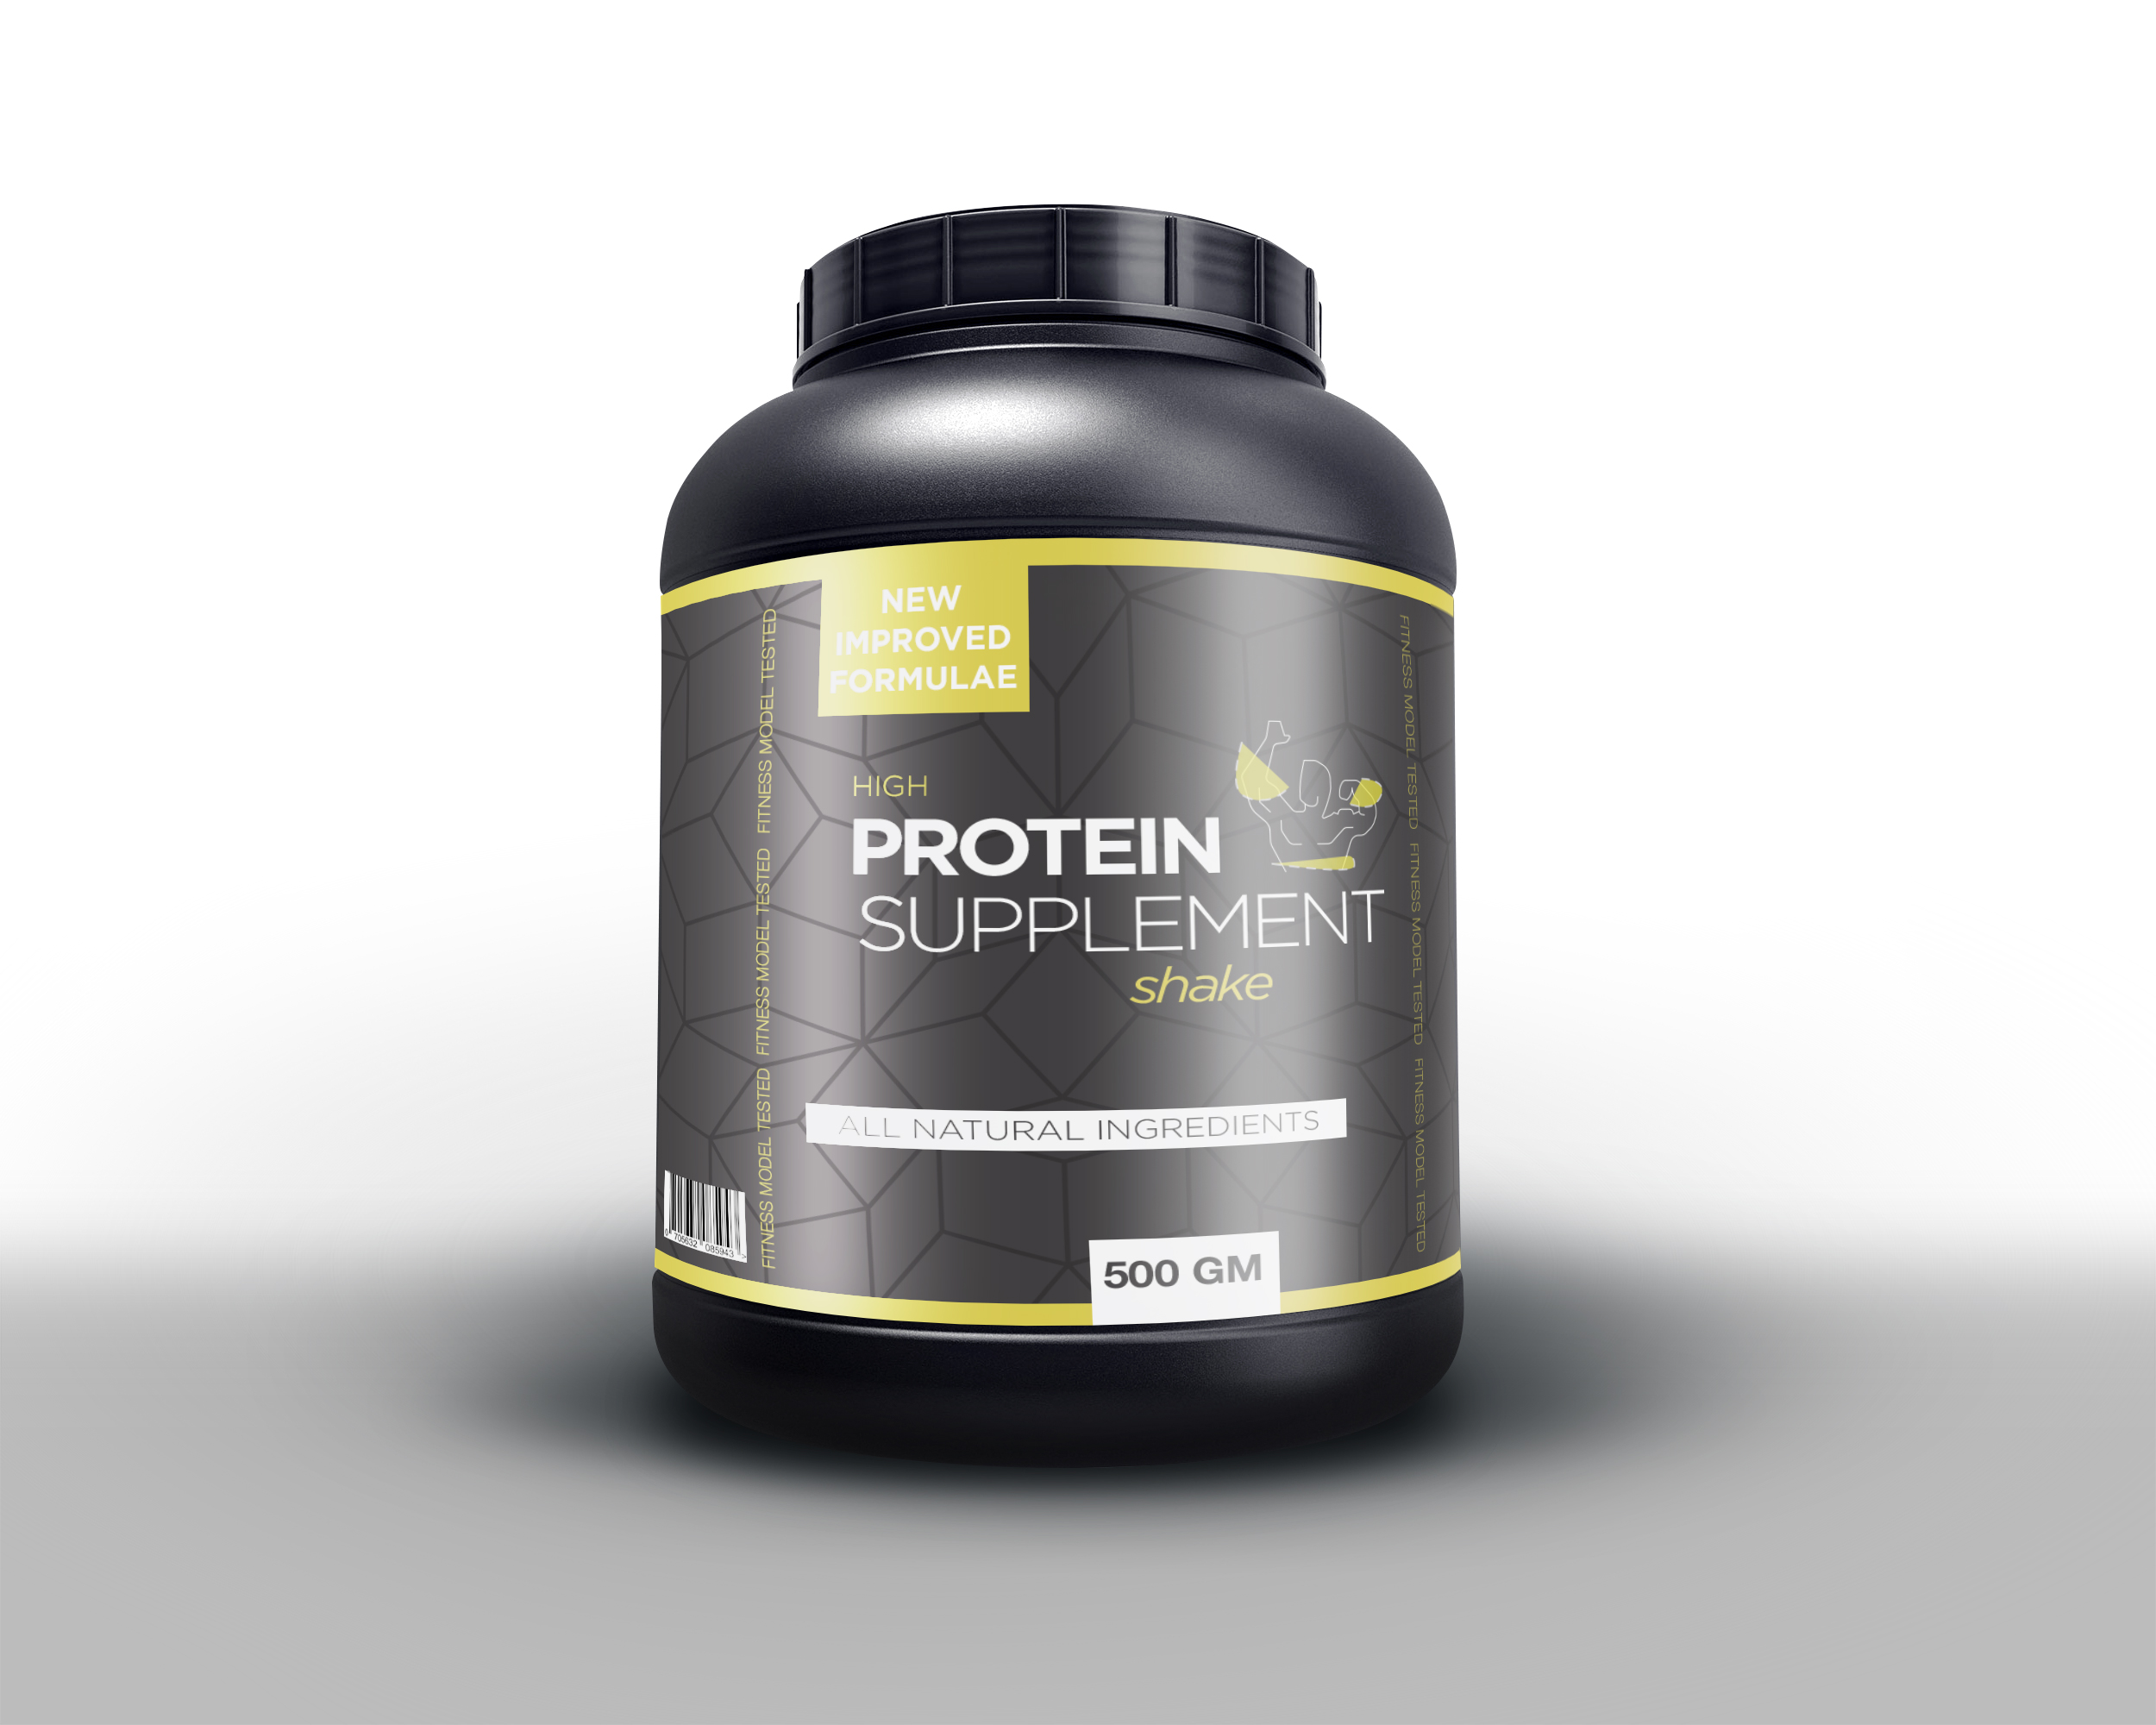 Protein Supplement Packaging Concept